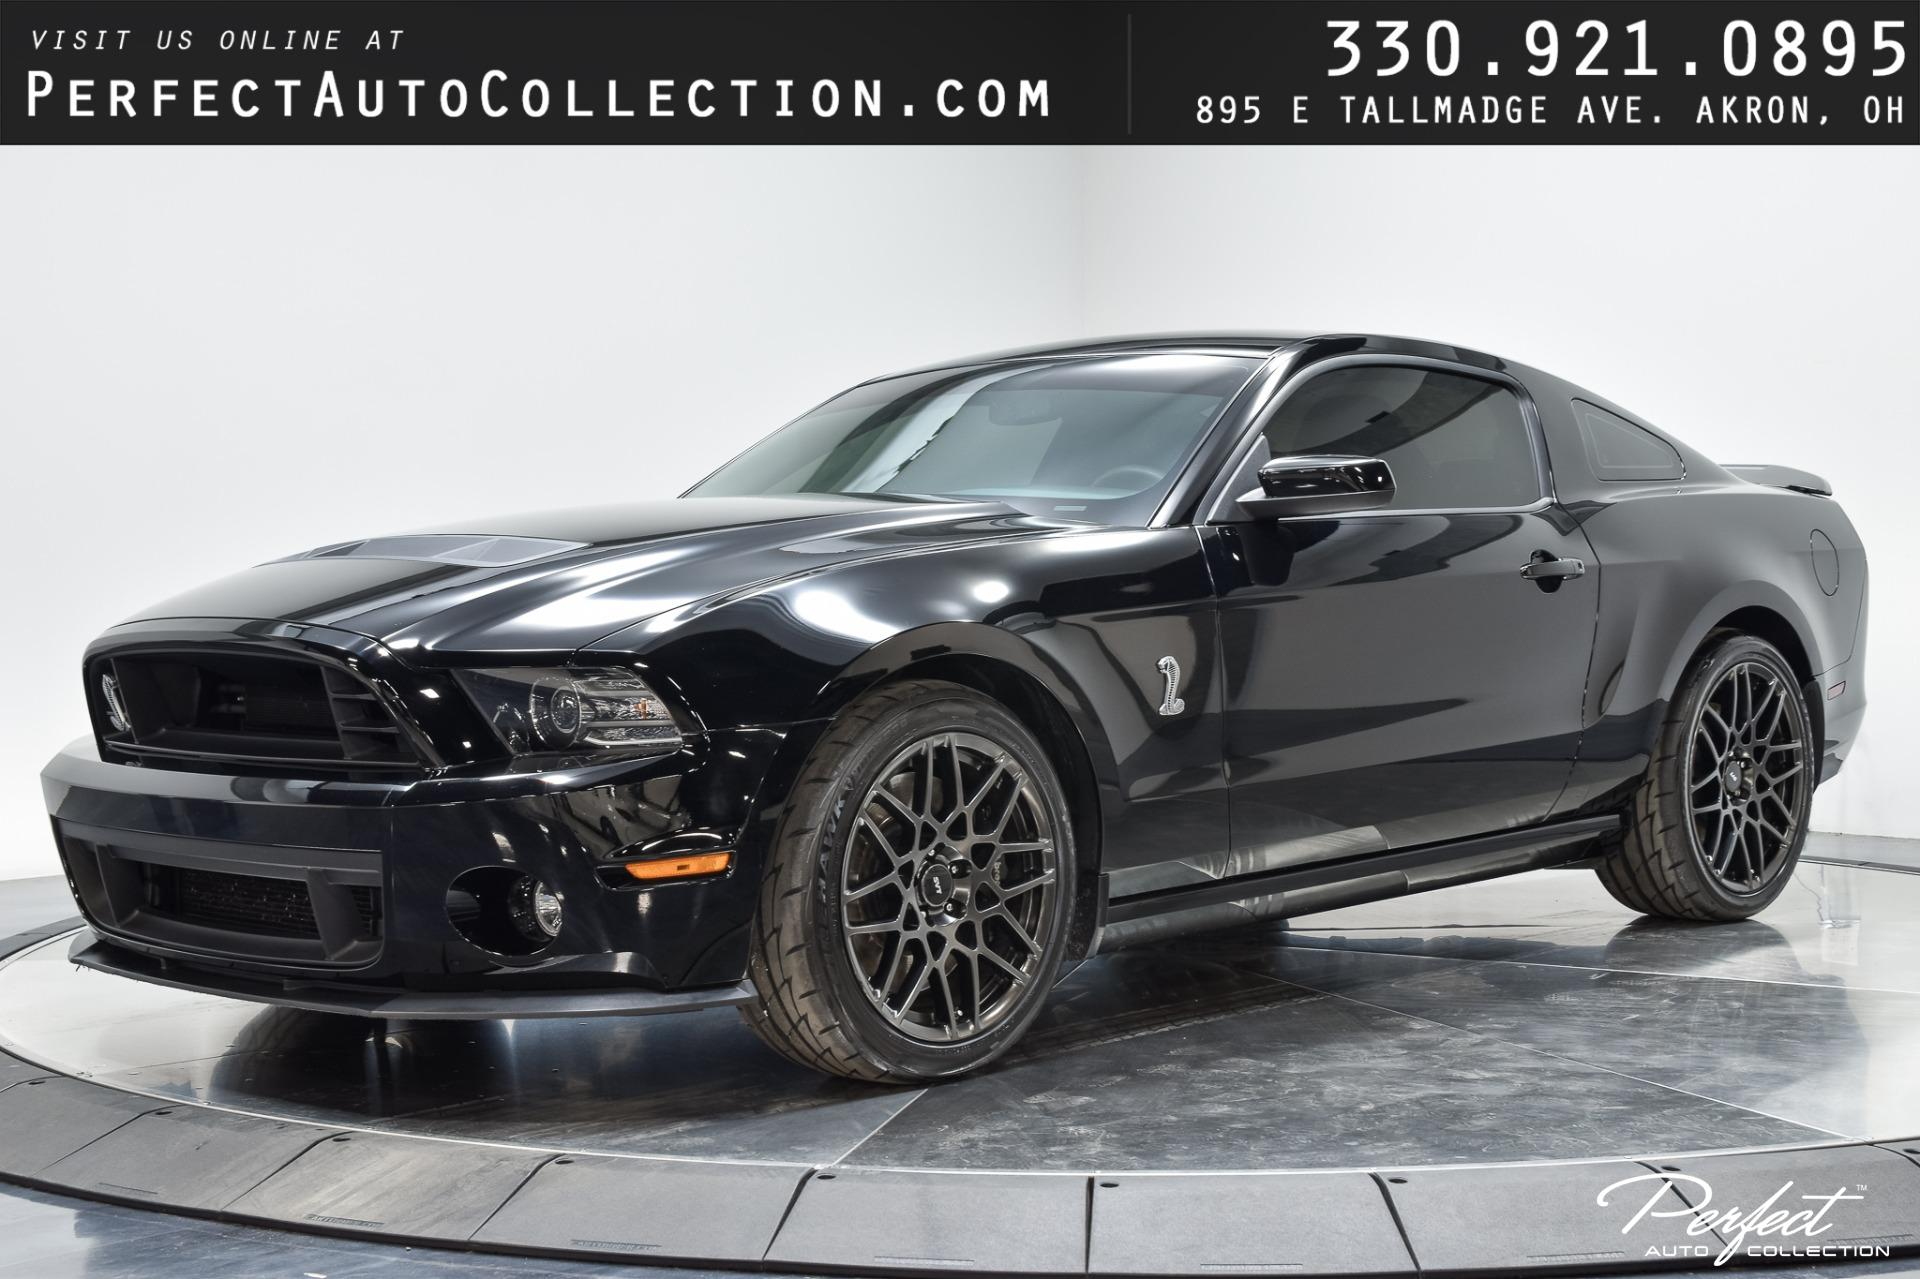 Used 2013 Ford Shelby GT500 for sale $48,495 at Perfect Auto Collection in Akron OH 44310 1